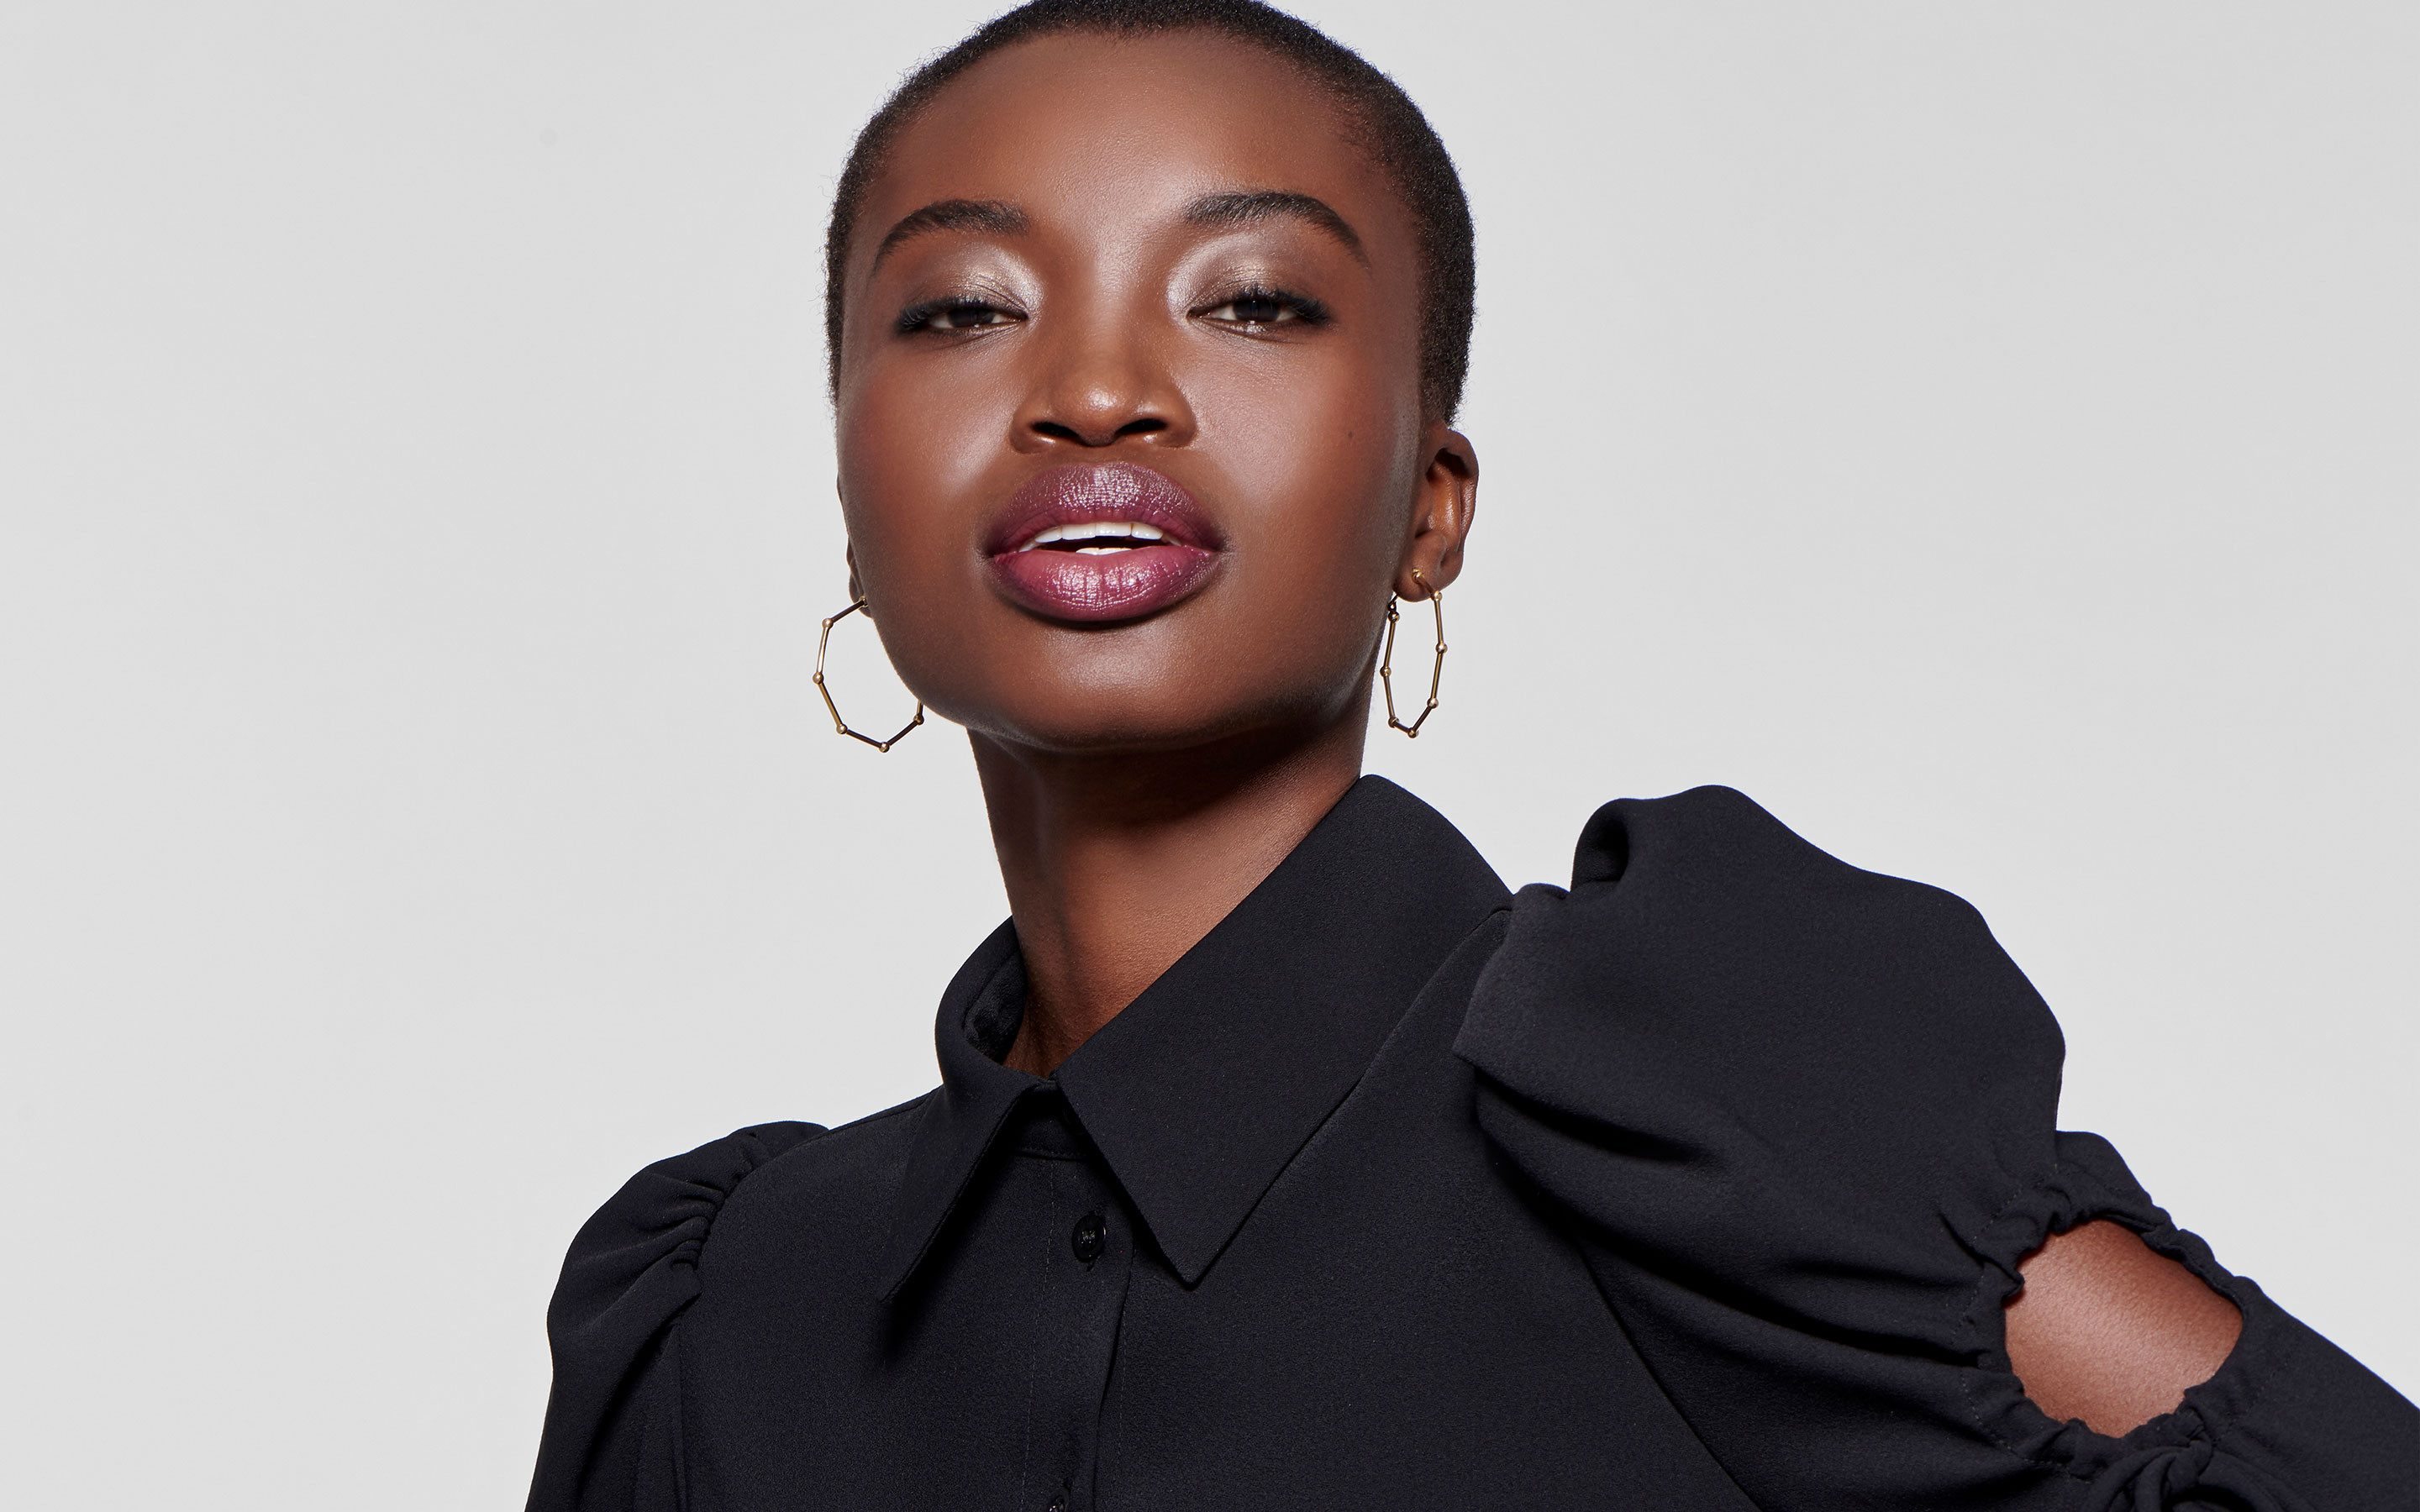 captivating black woman modeling hexagonal hoop earrings of 22 karat gold in polished finish